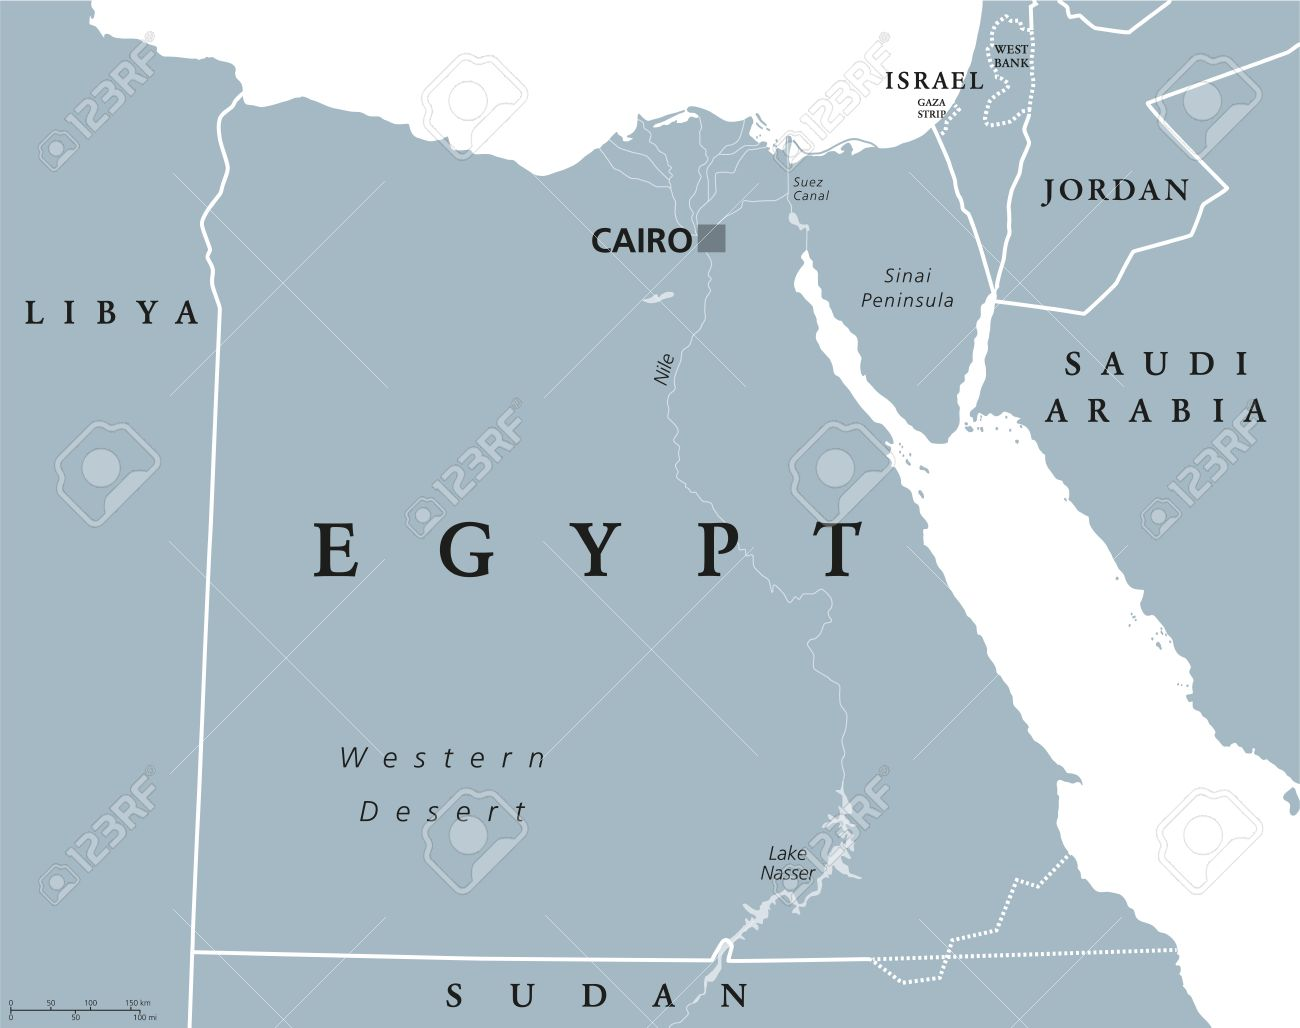 Egypt political map with capital Cairo, with Nile, Sinai Peninsula..